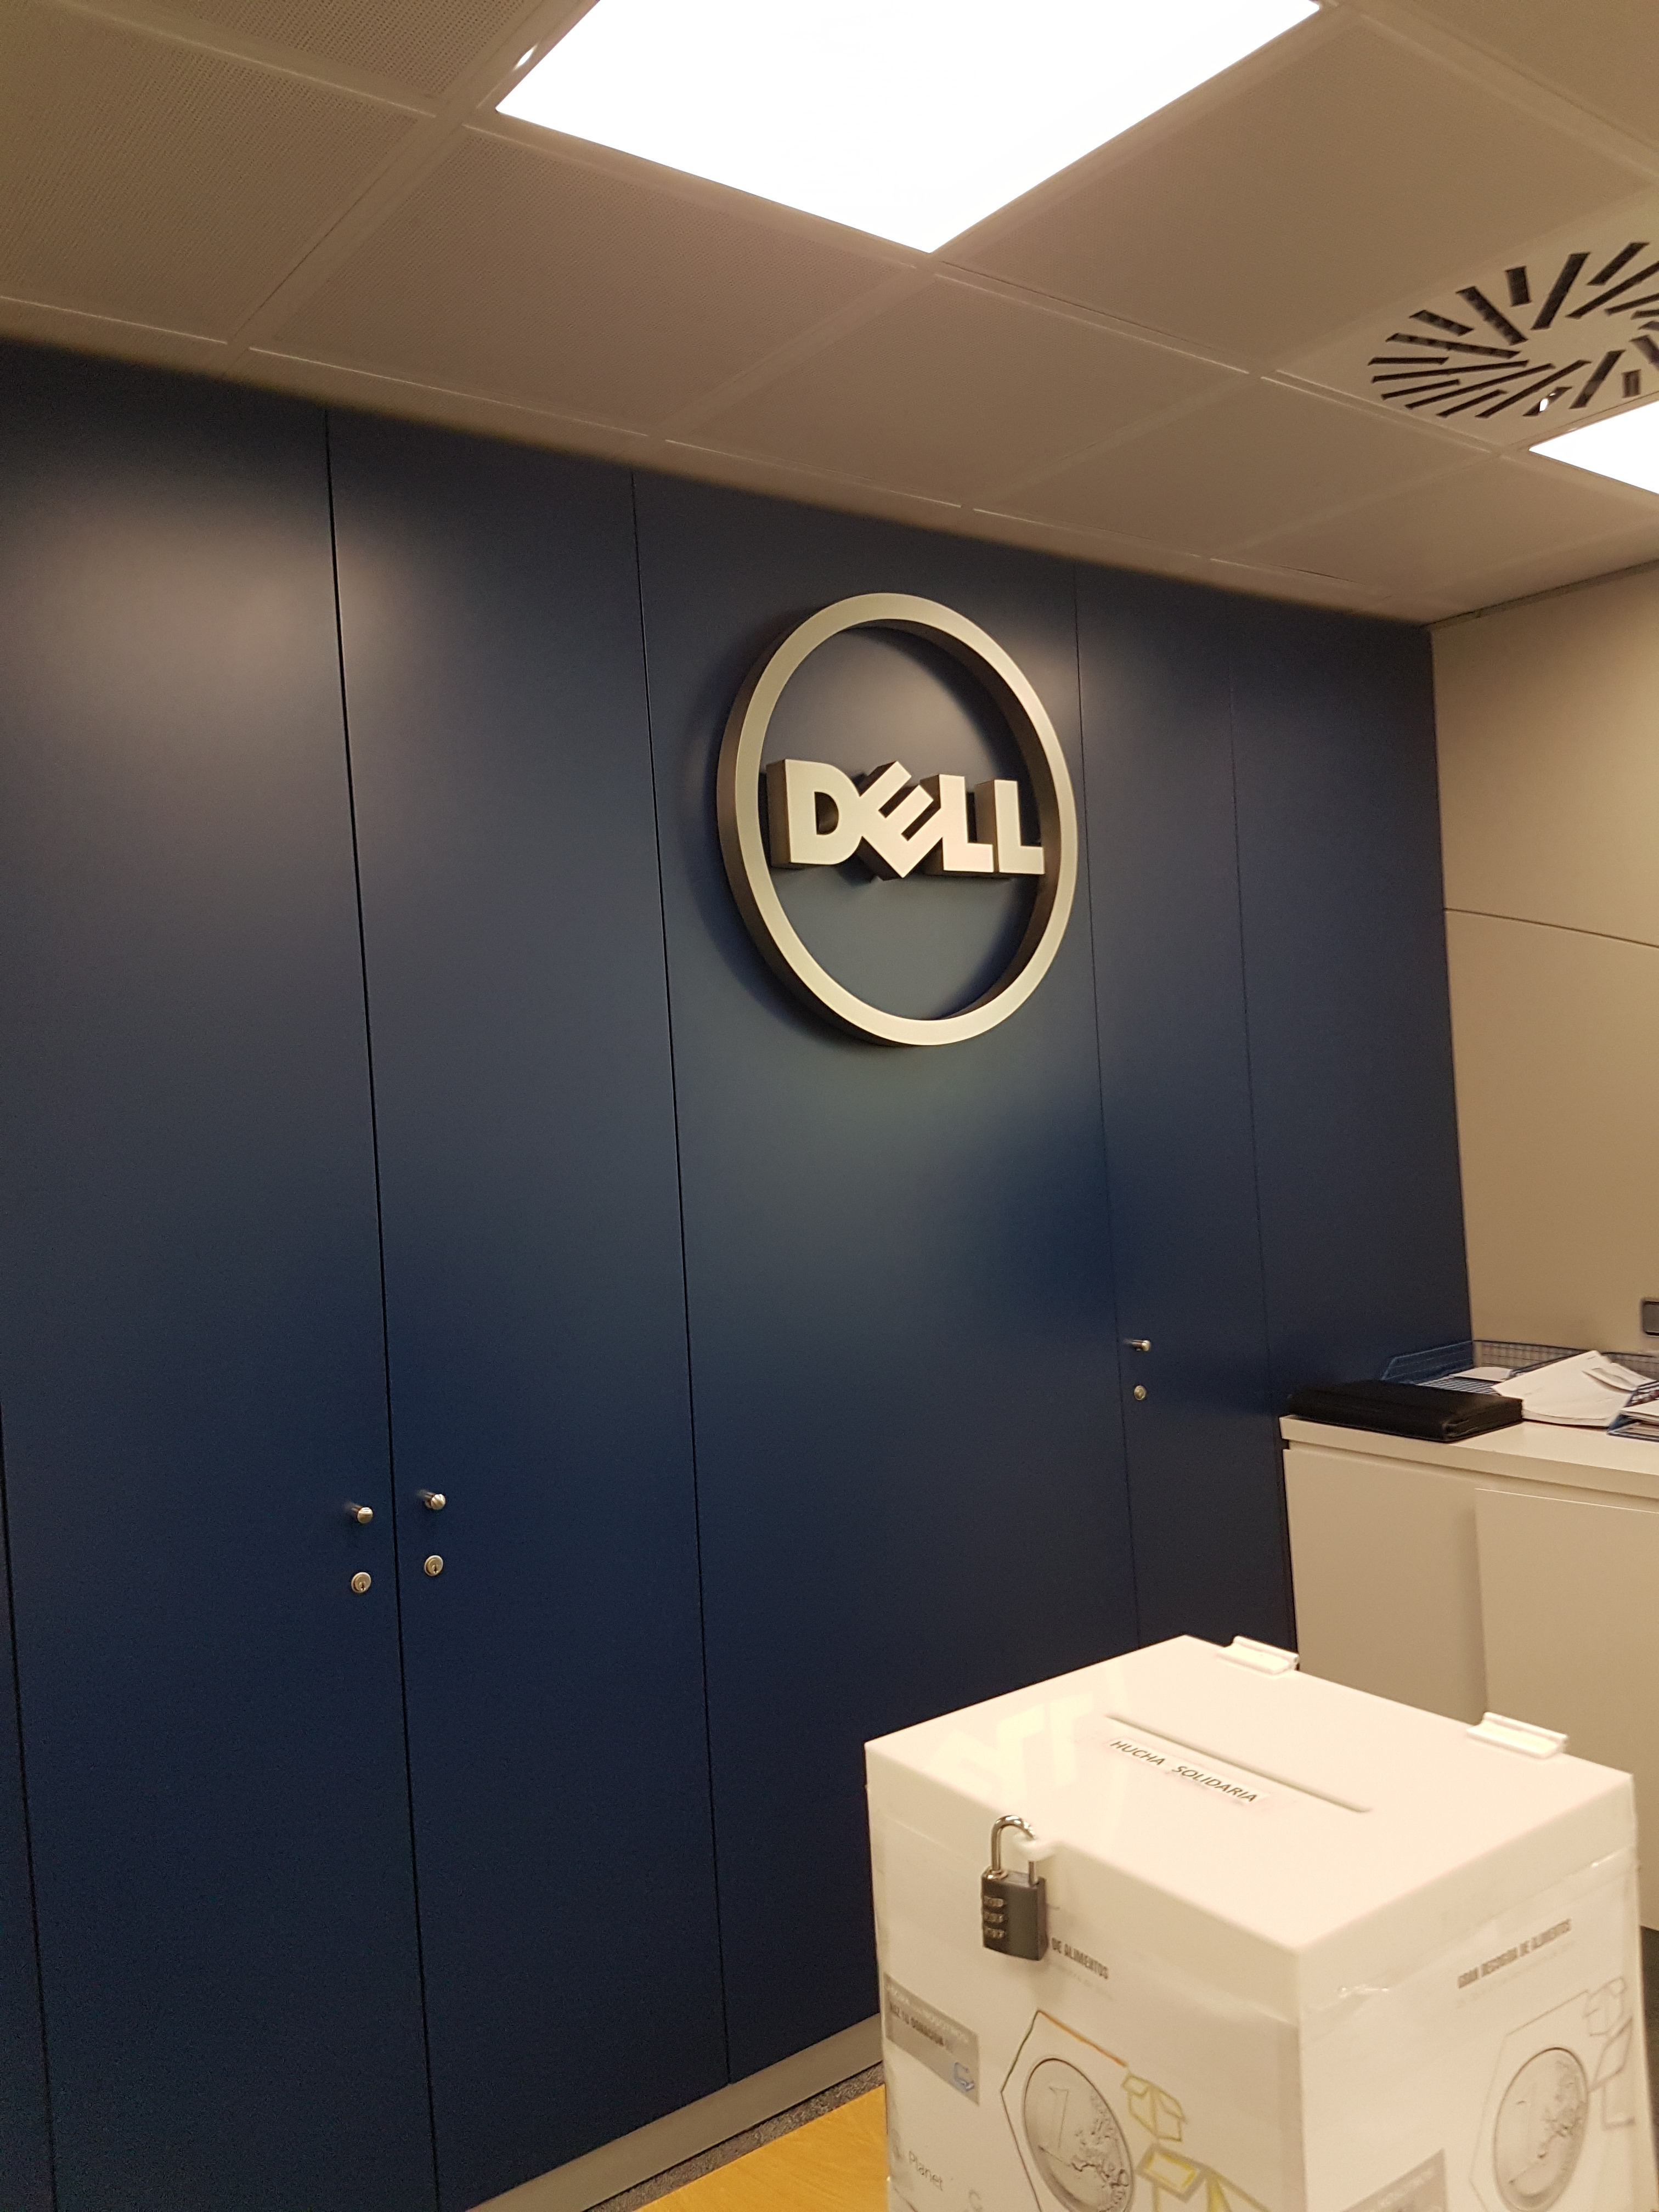 DELL - Plate Letters 3